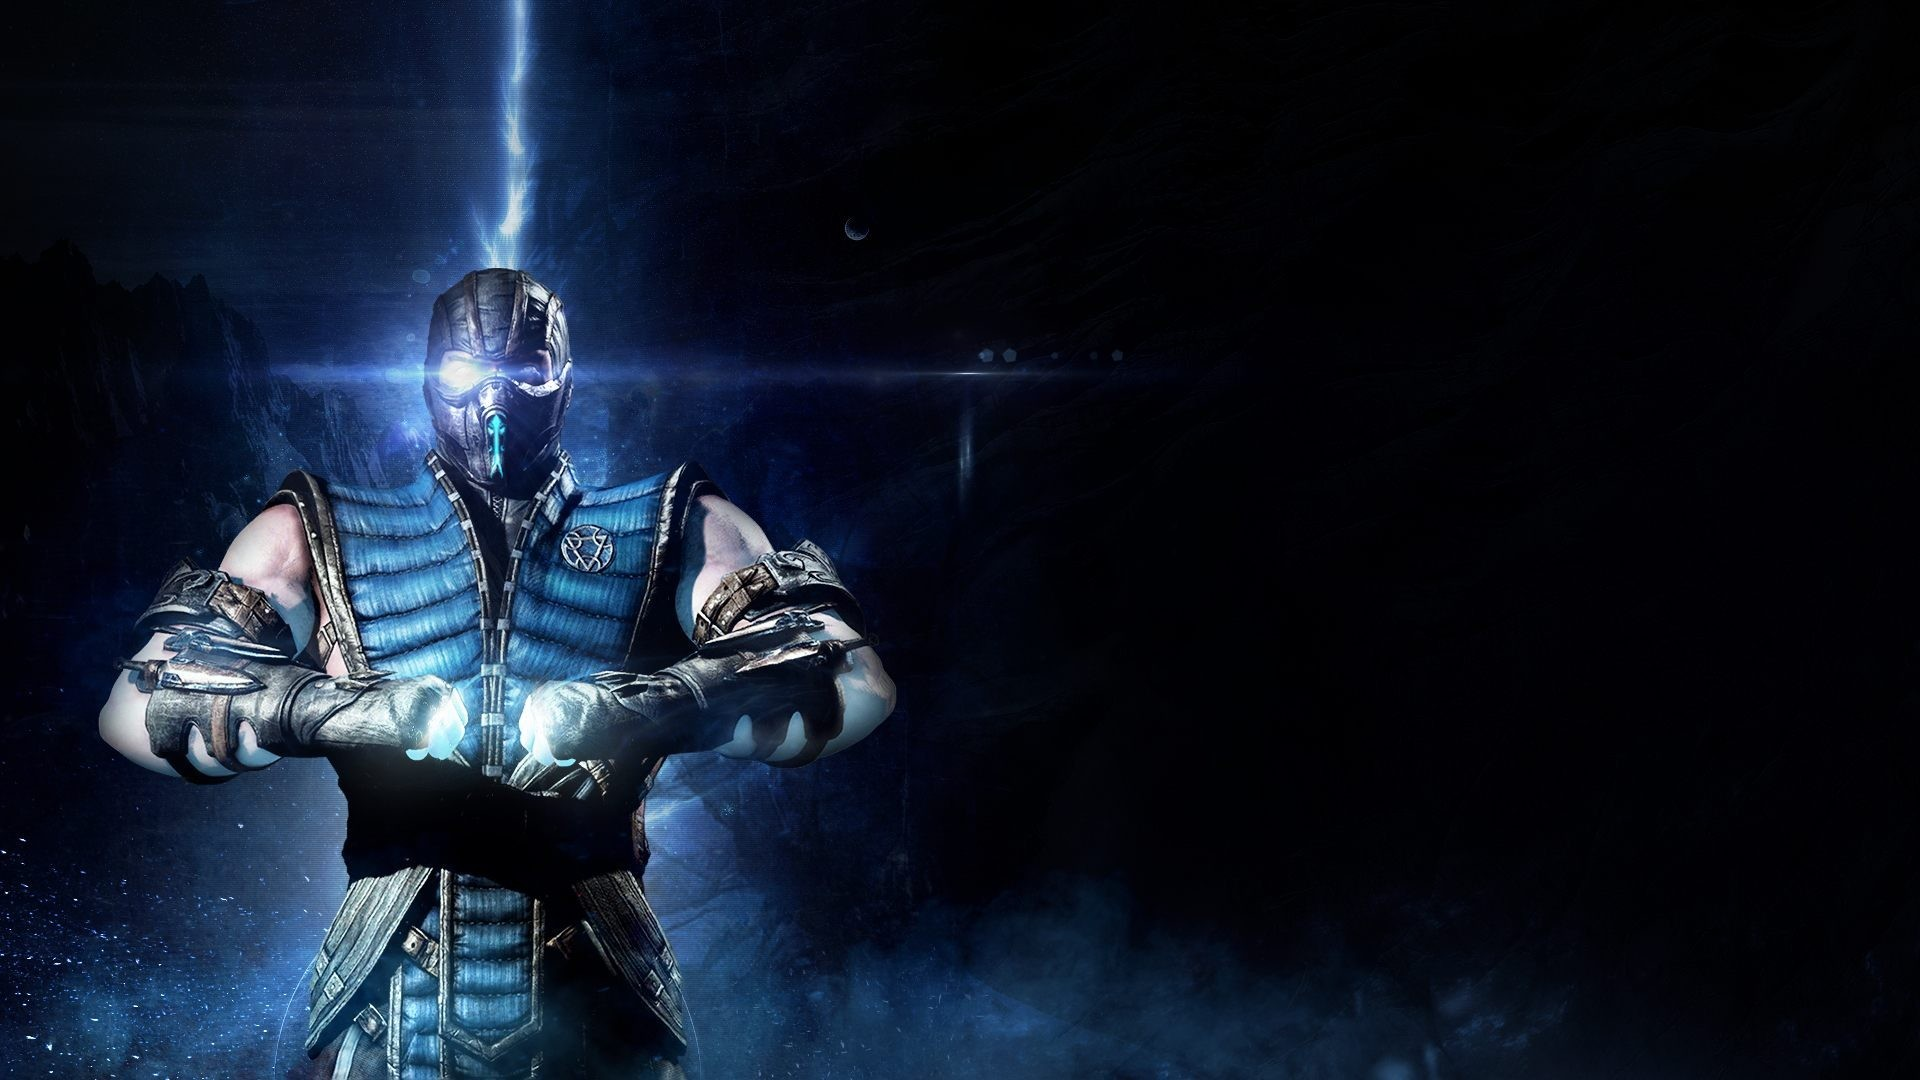 Mortal Kombat X Iphone Wallpaper 70 Images